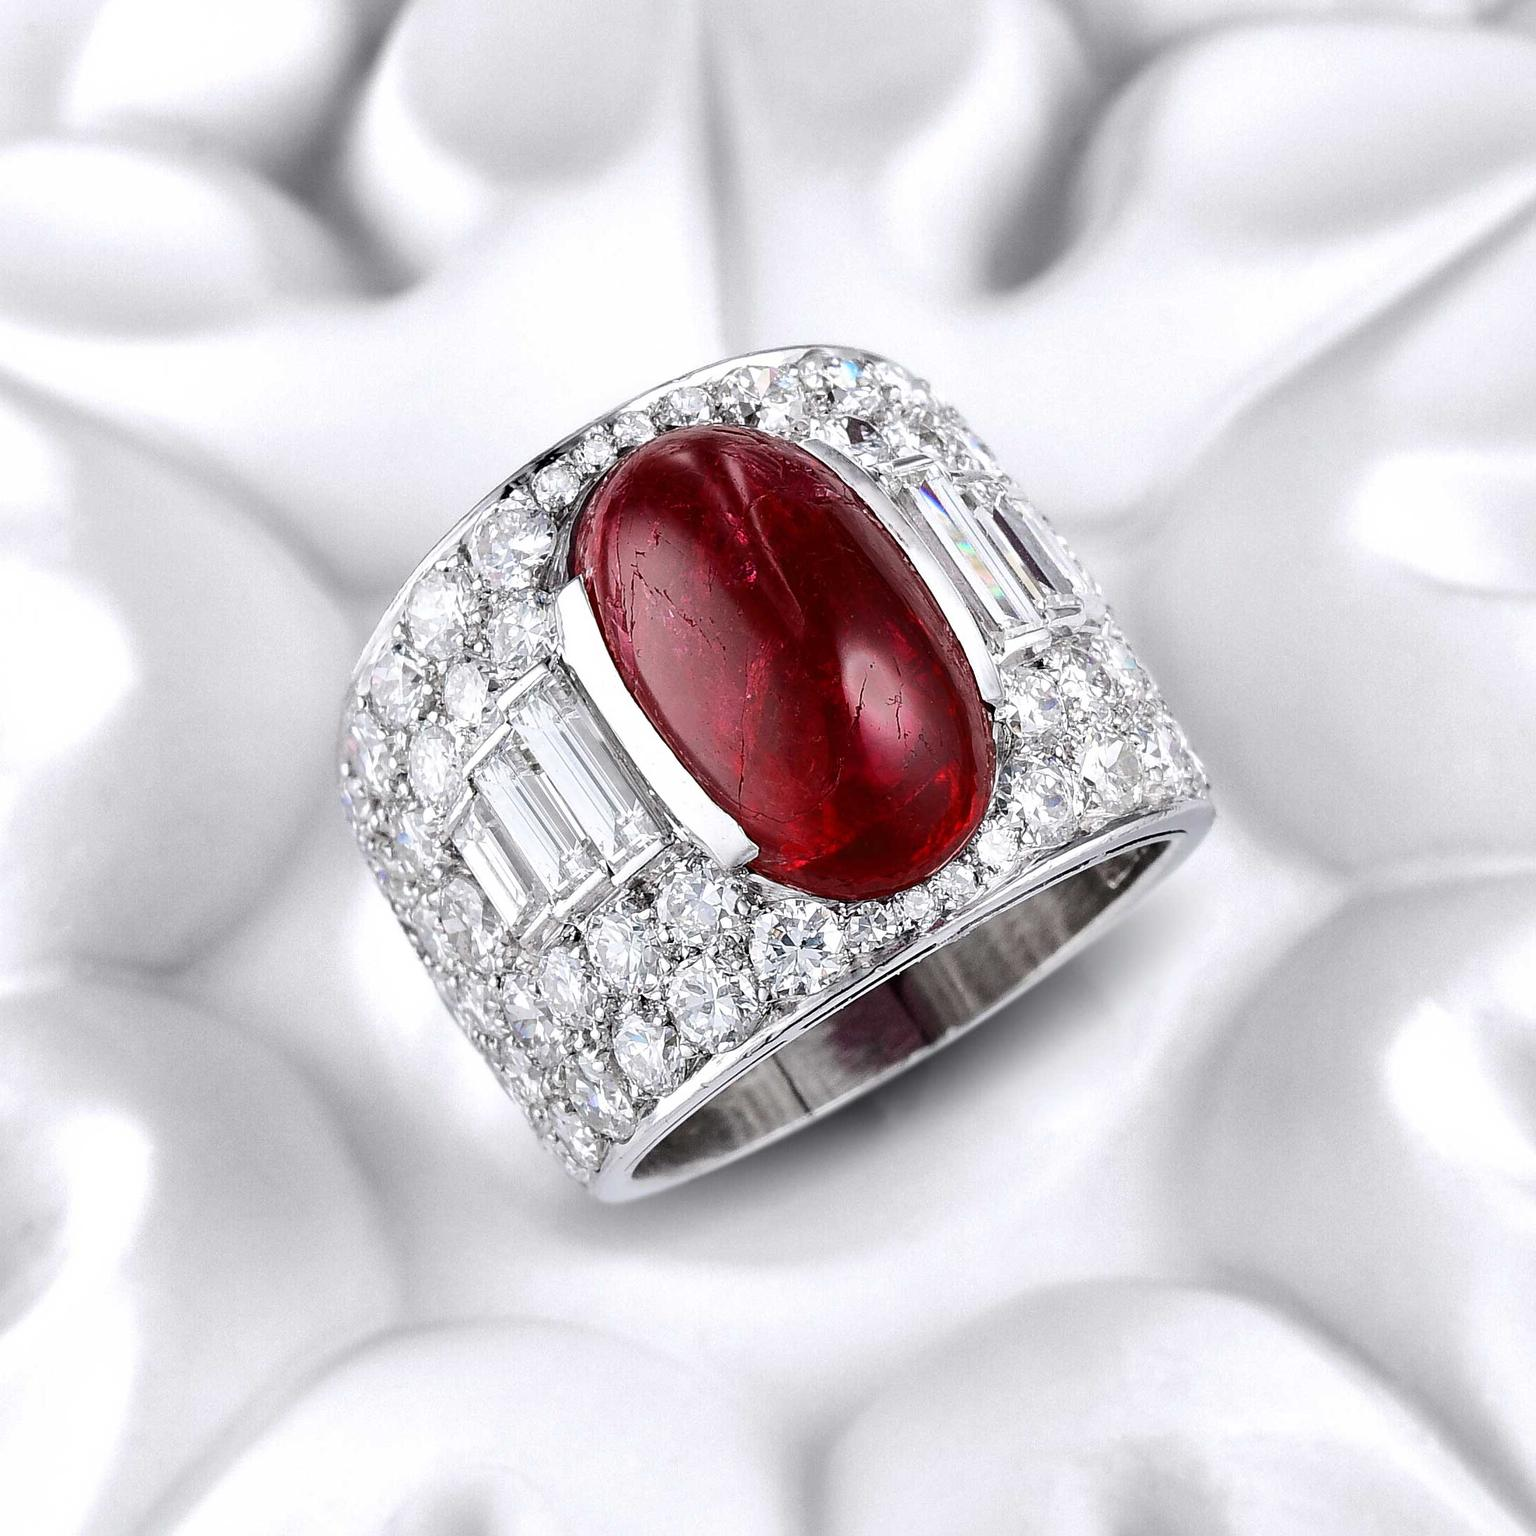 Bulgari Burmese Ruby Diamond Trombino Ring Estimate: $15000 to 25000